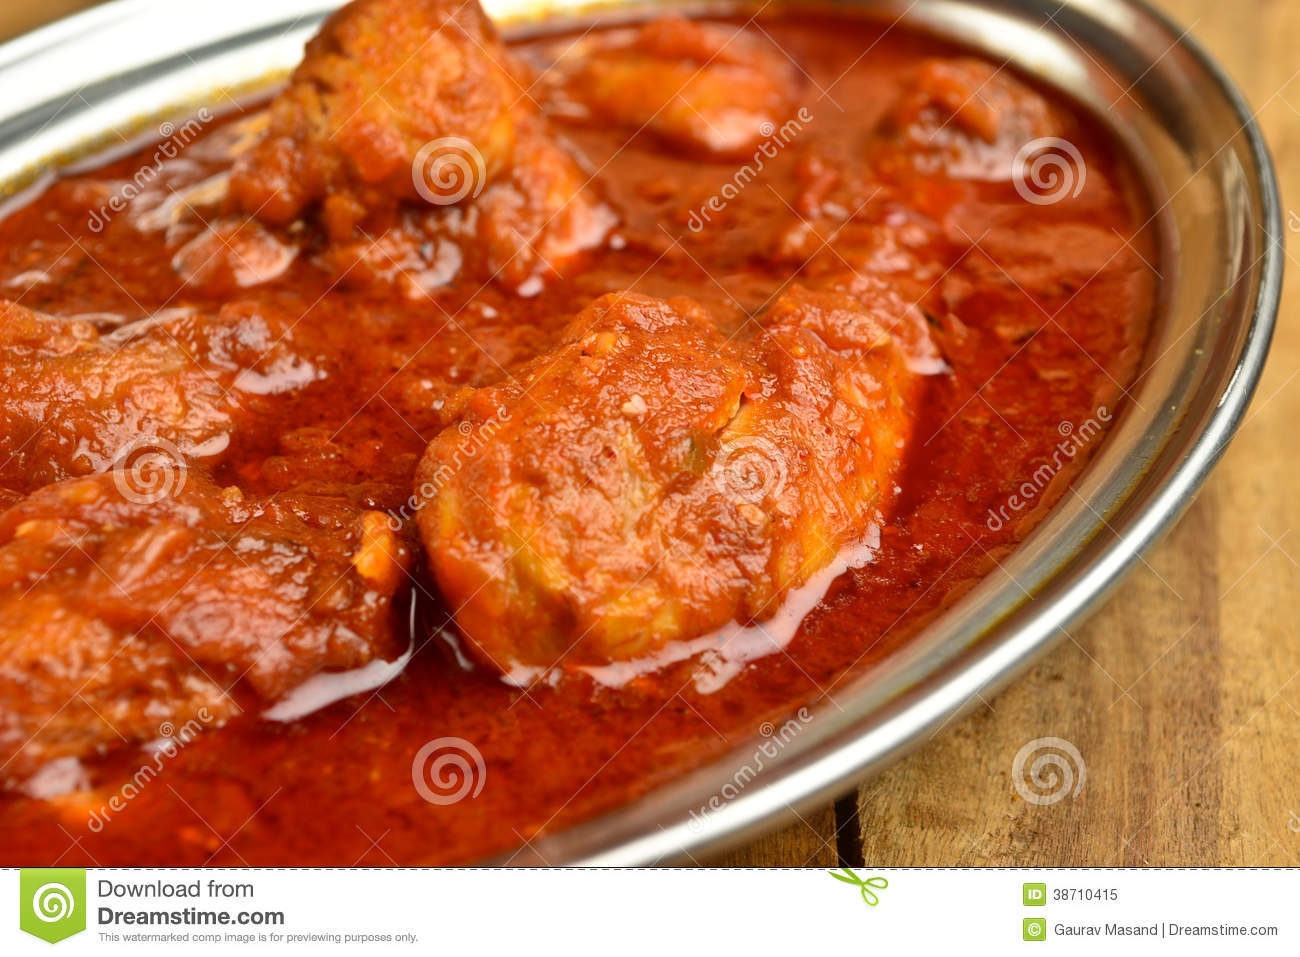 Chicken Curry Royalty Free Stock Photo - Image: 38710415 - photo#31